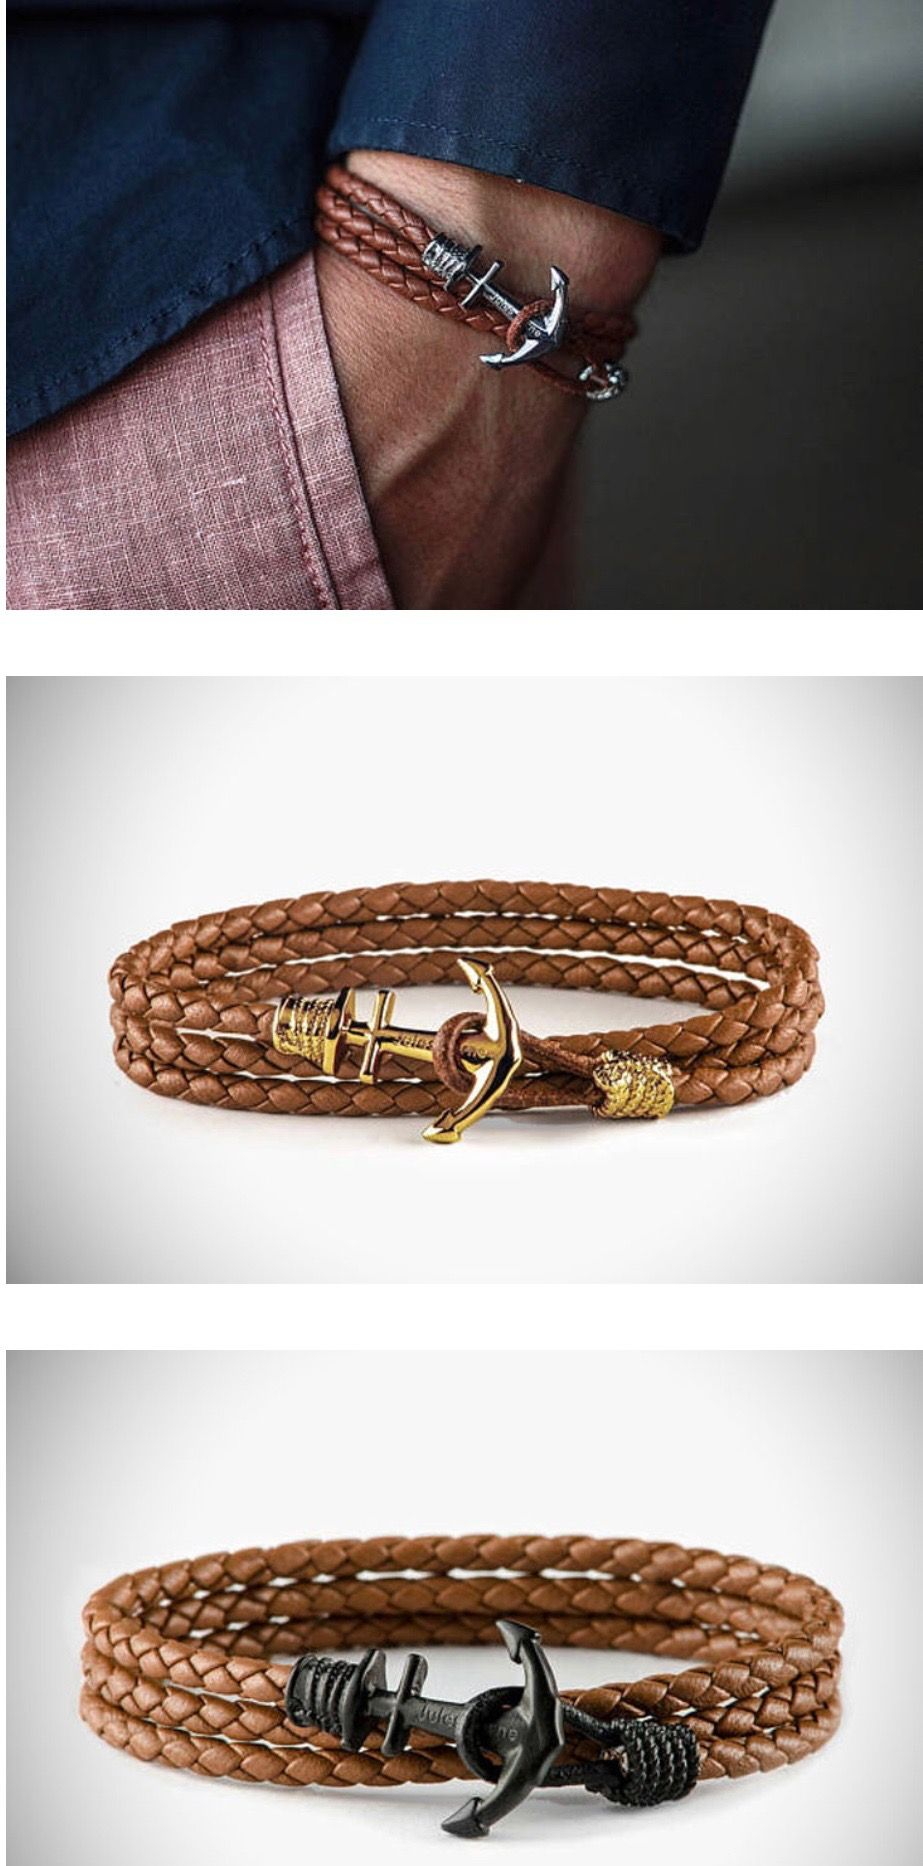 The Coolest Bracelets For Guys Men Accessories Bracelets For